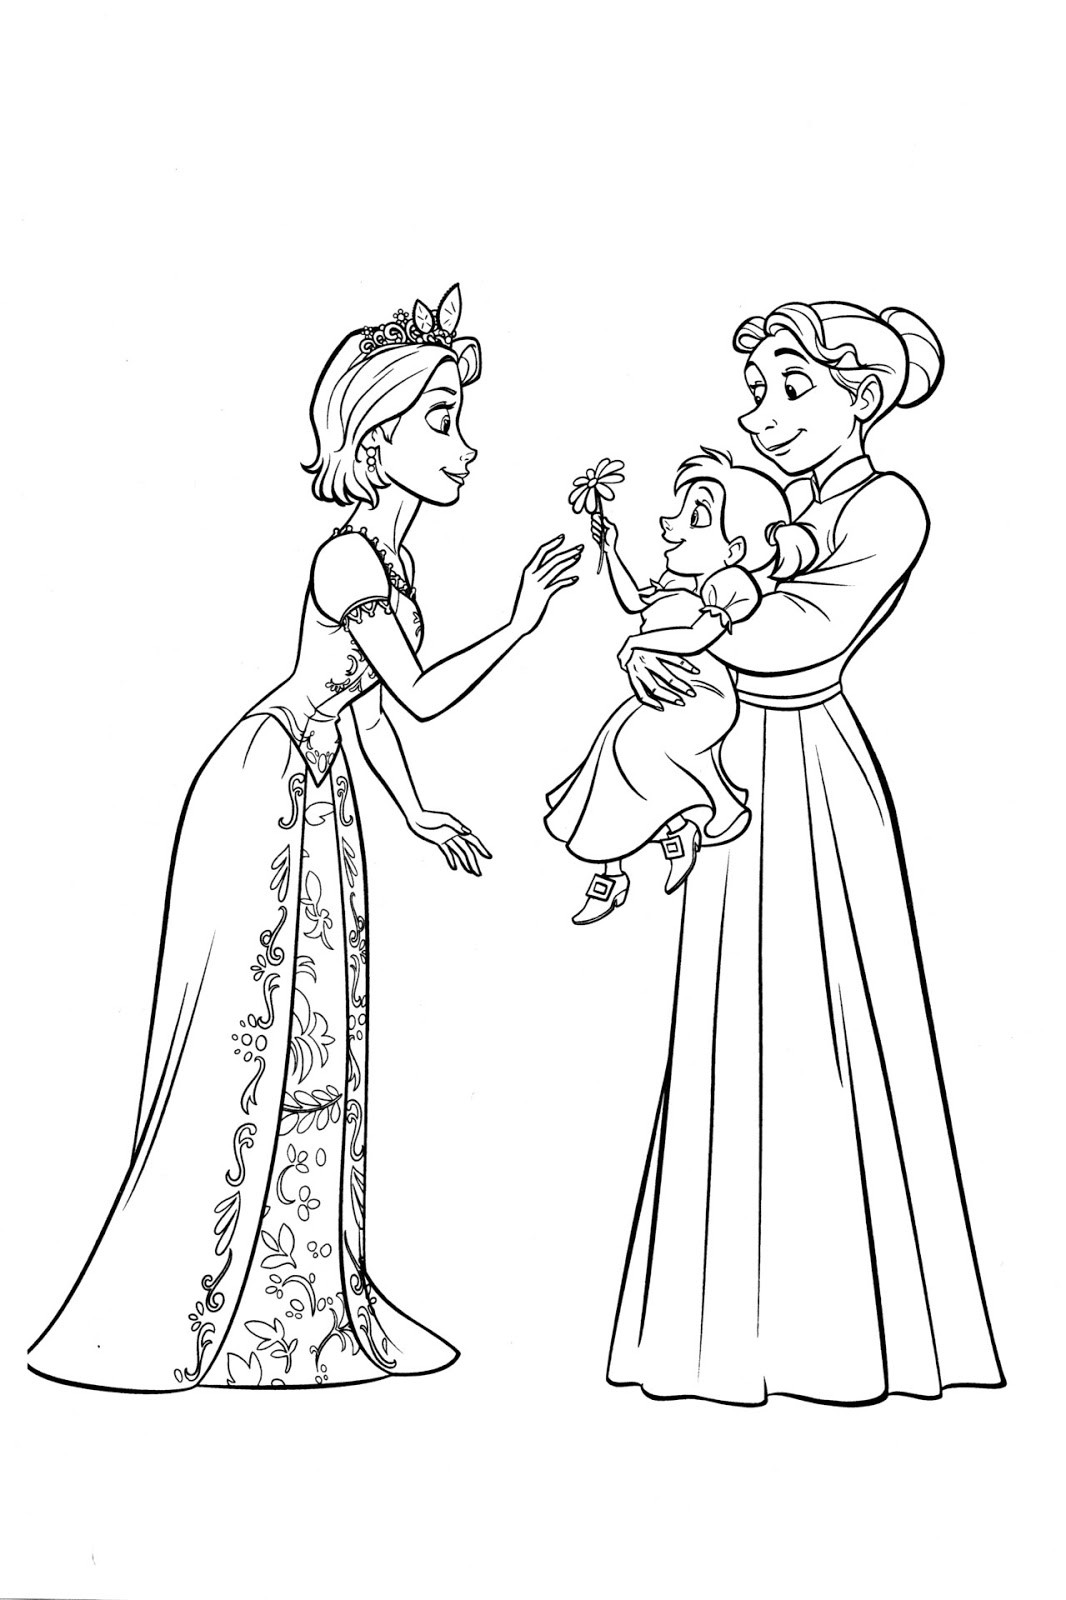 baby rapunzel coloring pages princess coloring pages color online free printable coloring rapunzel pages baby